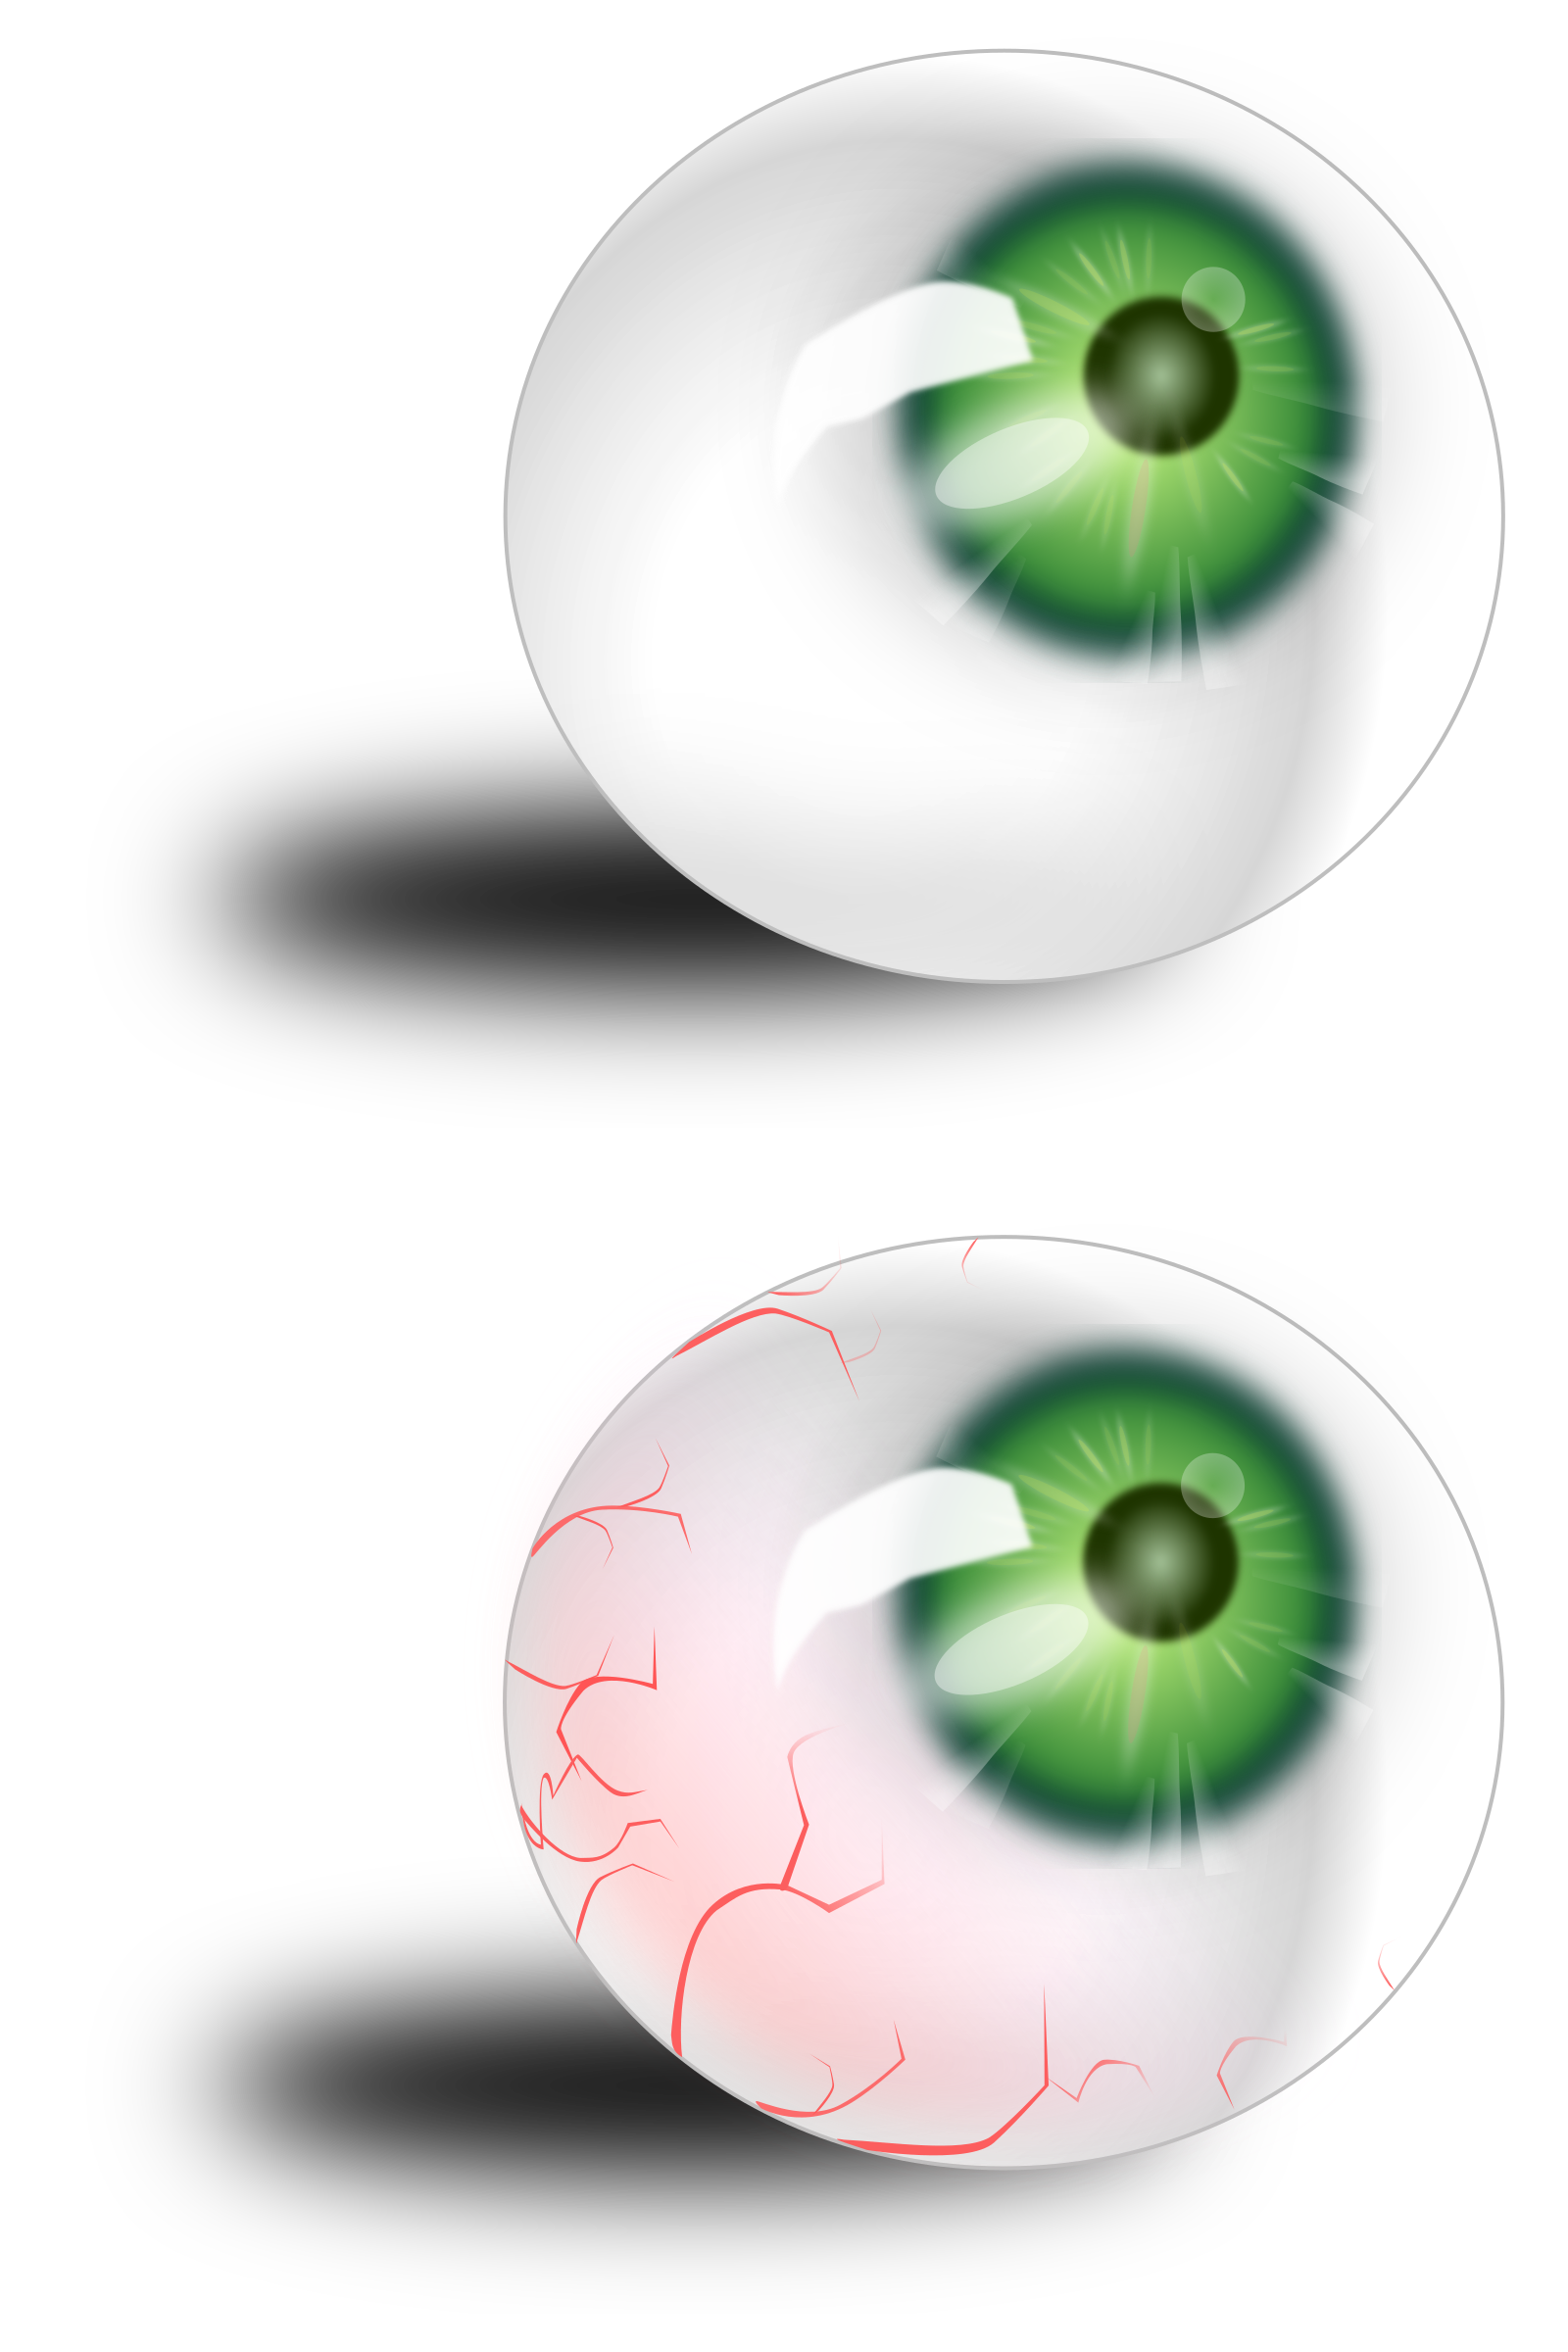 Eyeball green & bloodshot by moonhan